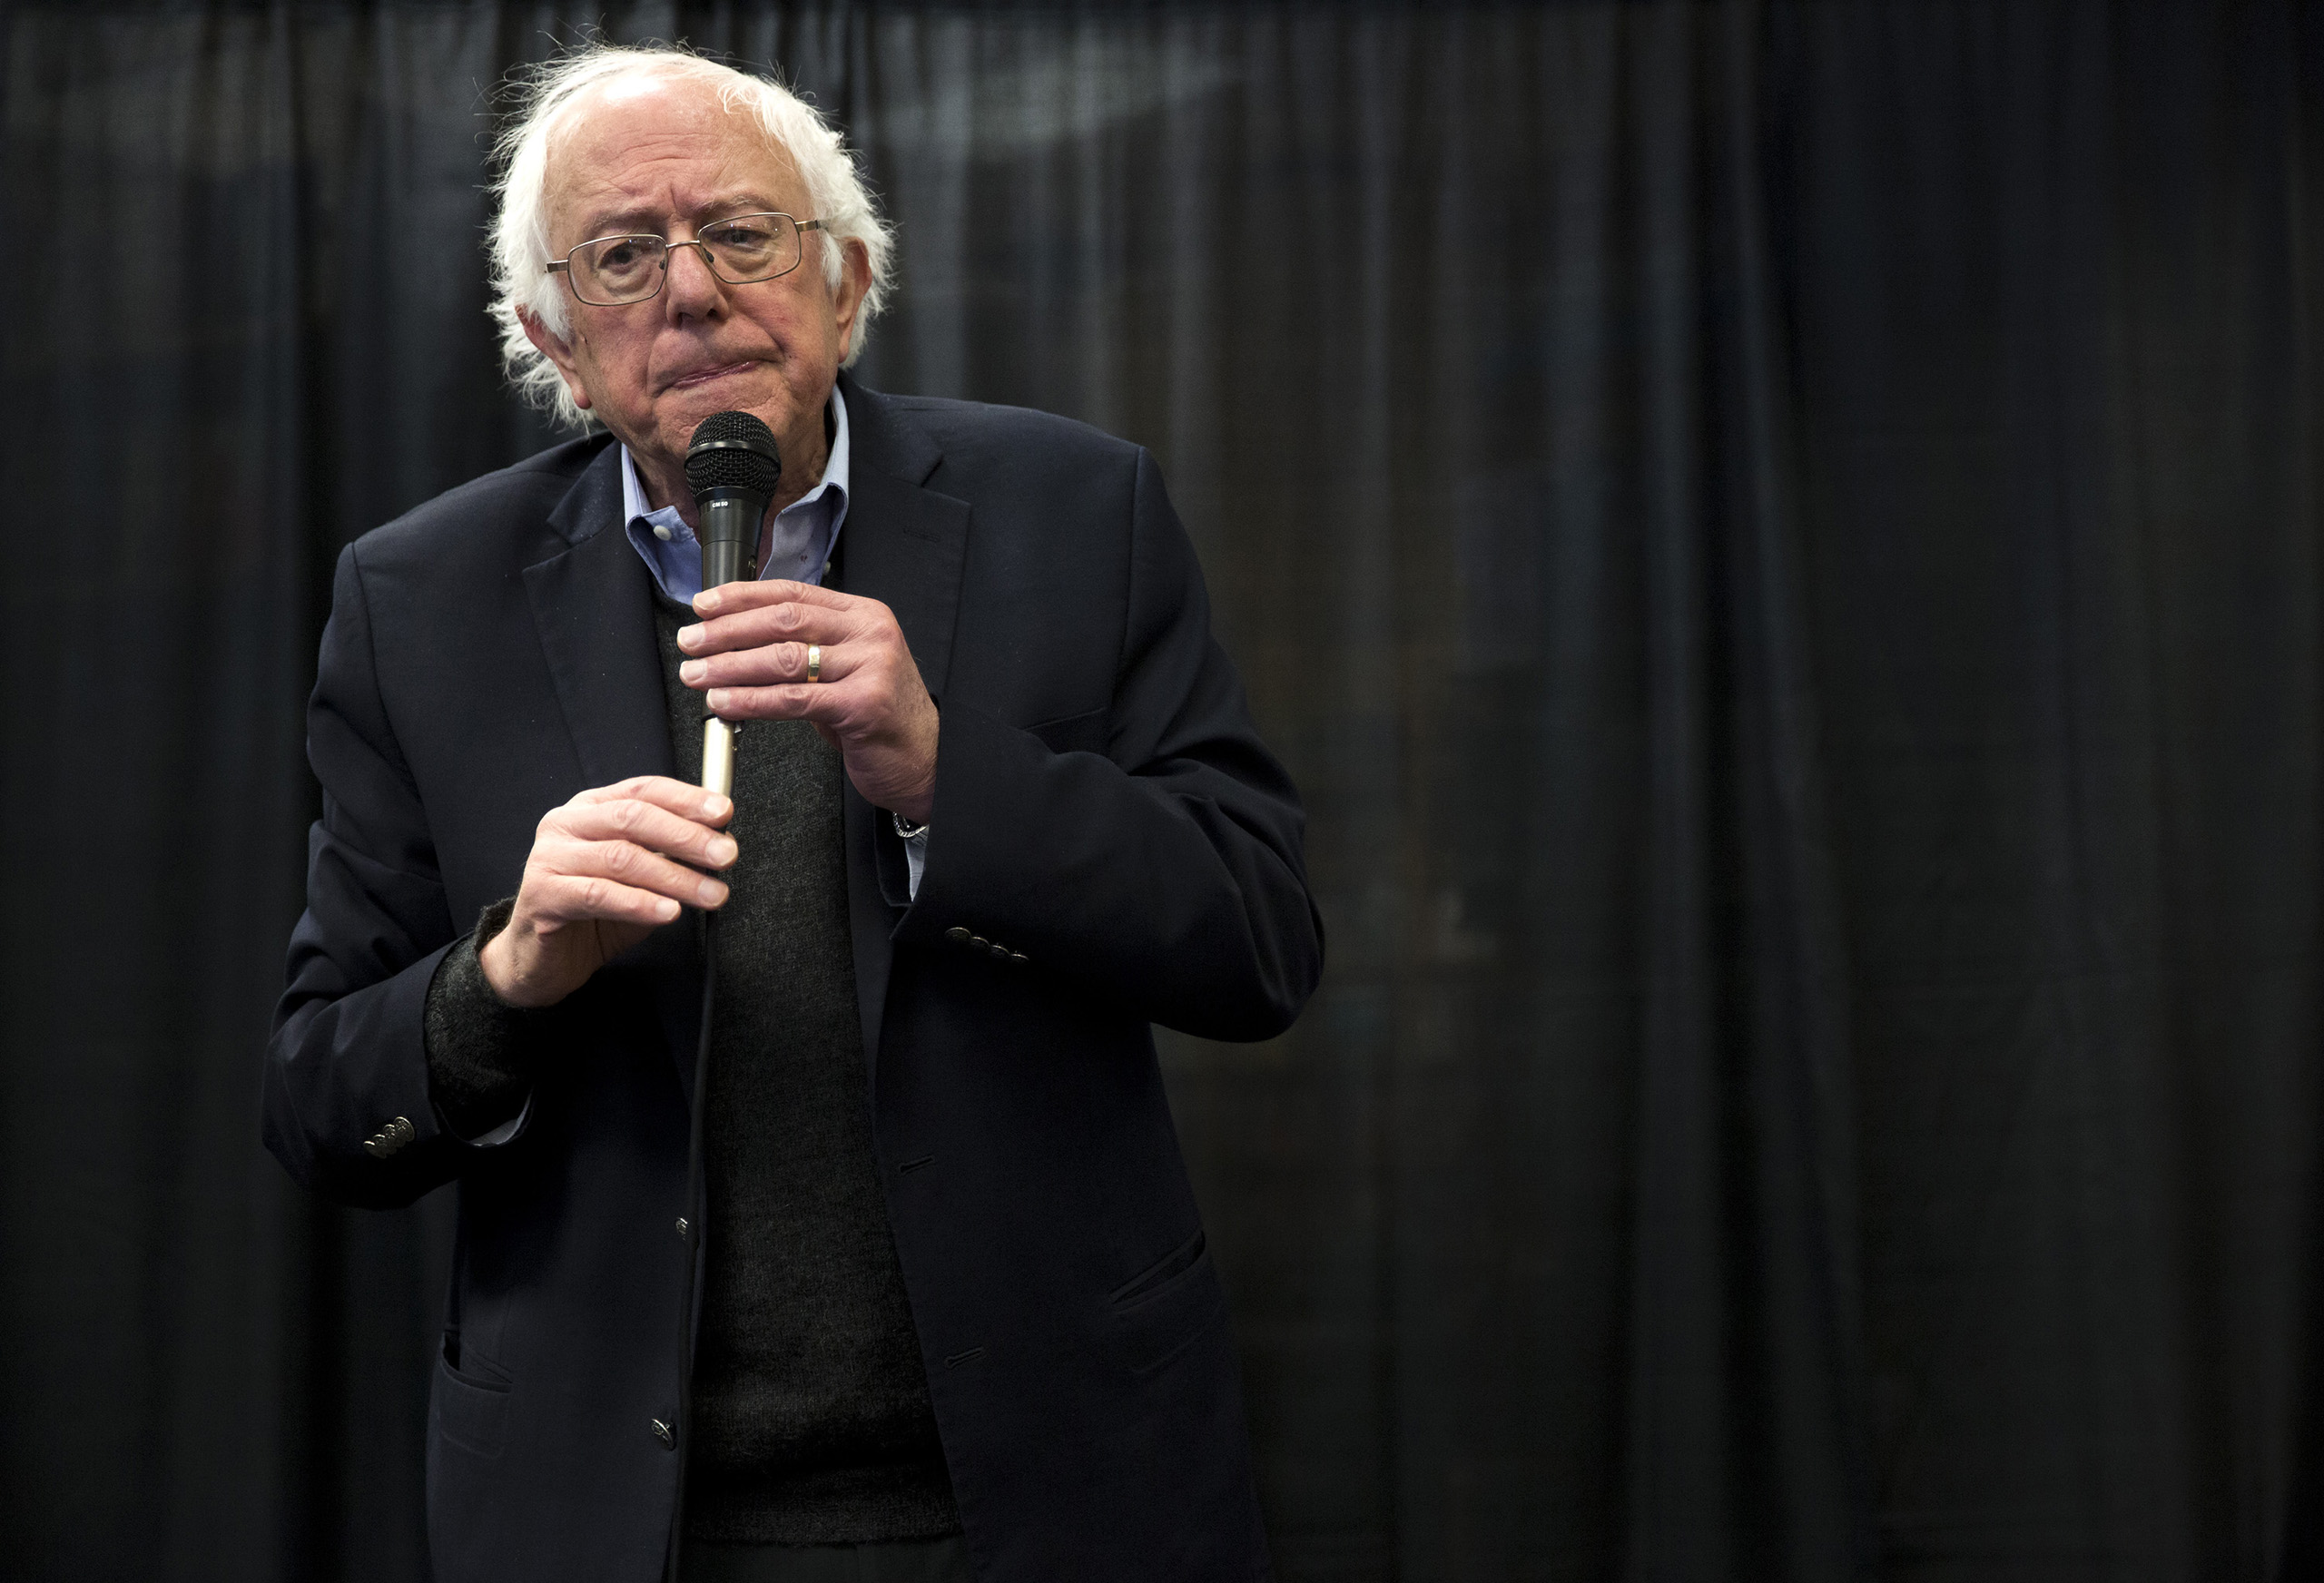 Senator Bernie Sanders speaks to supporters at a meet and greet promoting his new book, Our Revolution, at Books-A-Million in South Portland, ME., on Nov. 21, 2016.